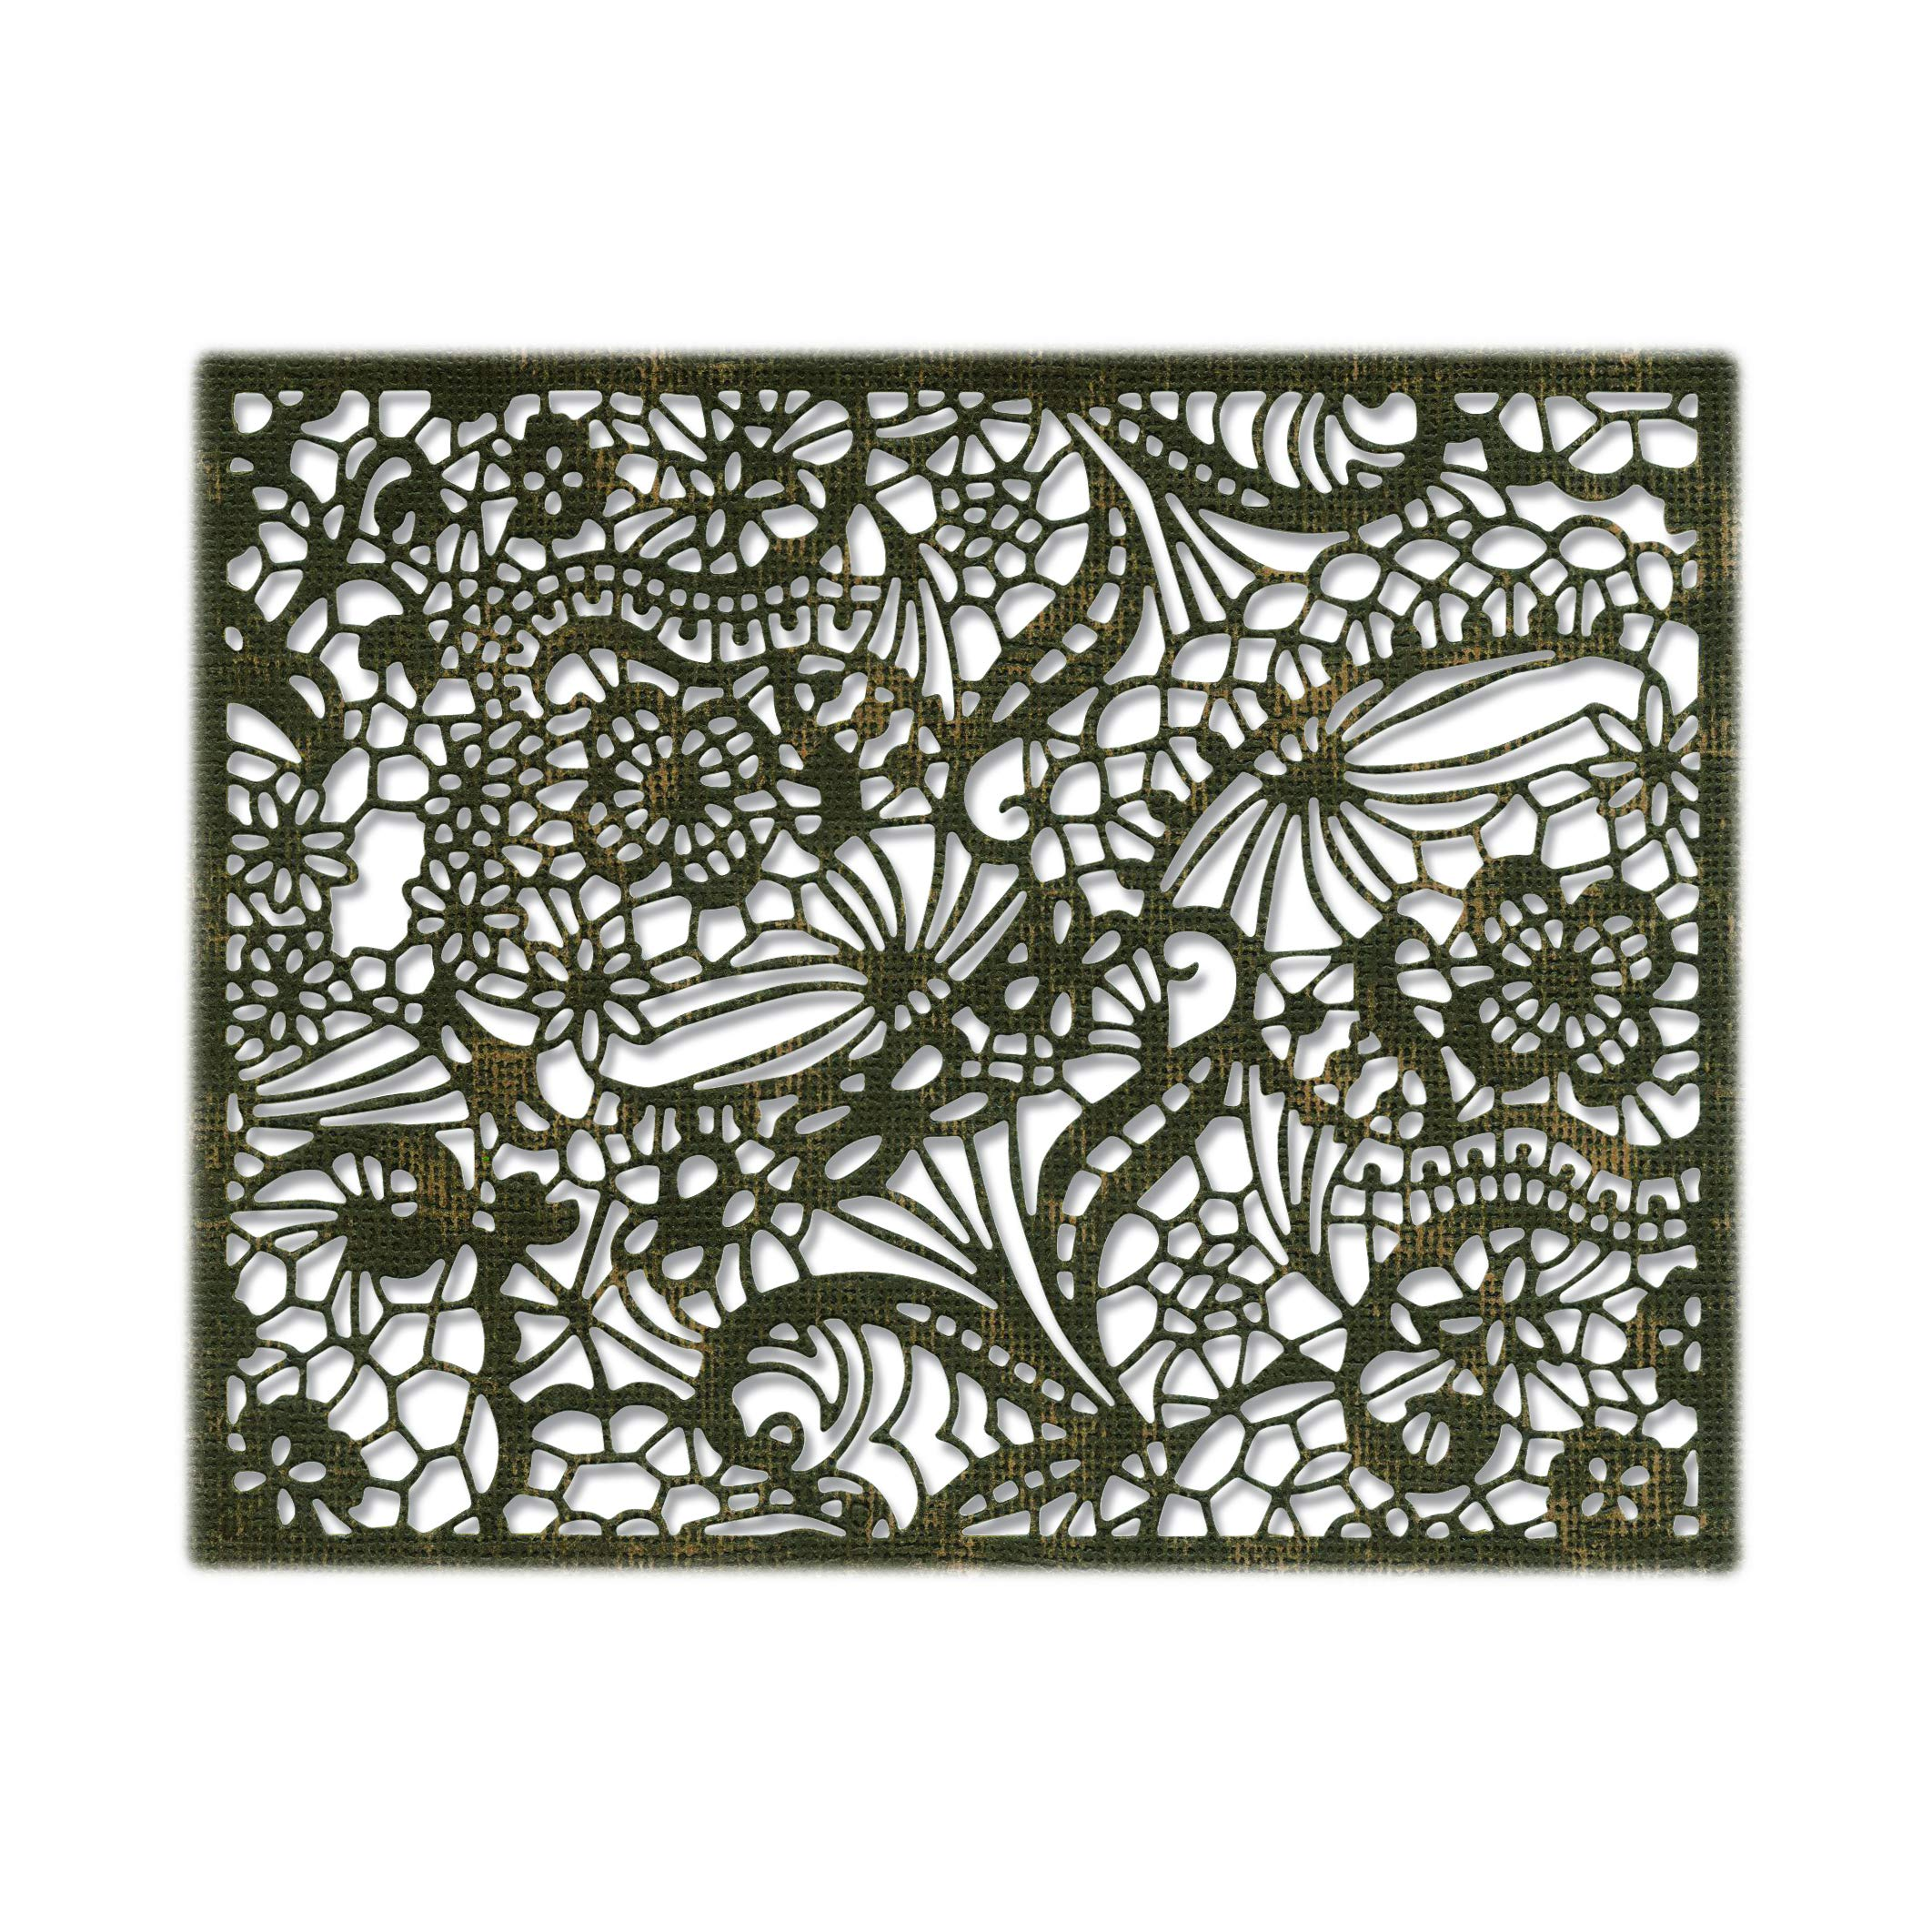 Sizzix 664181 Intricate Lace Dies, Multicolor